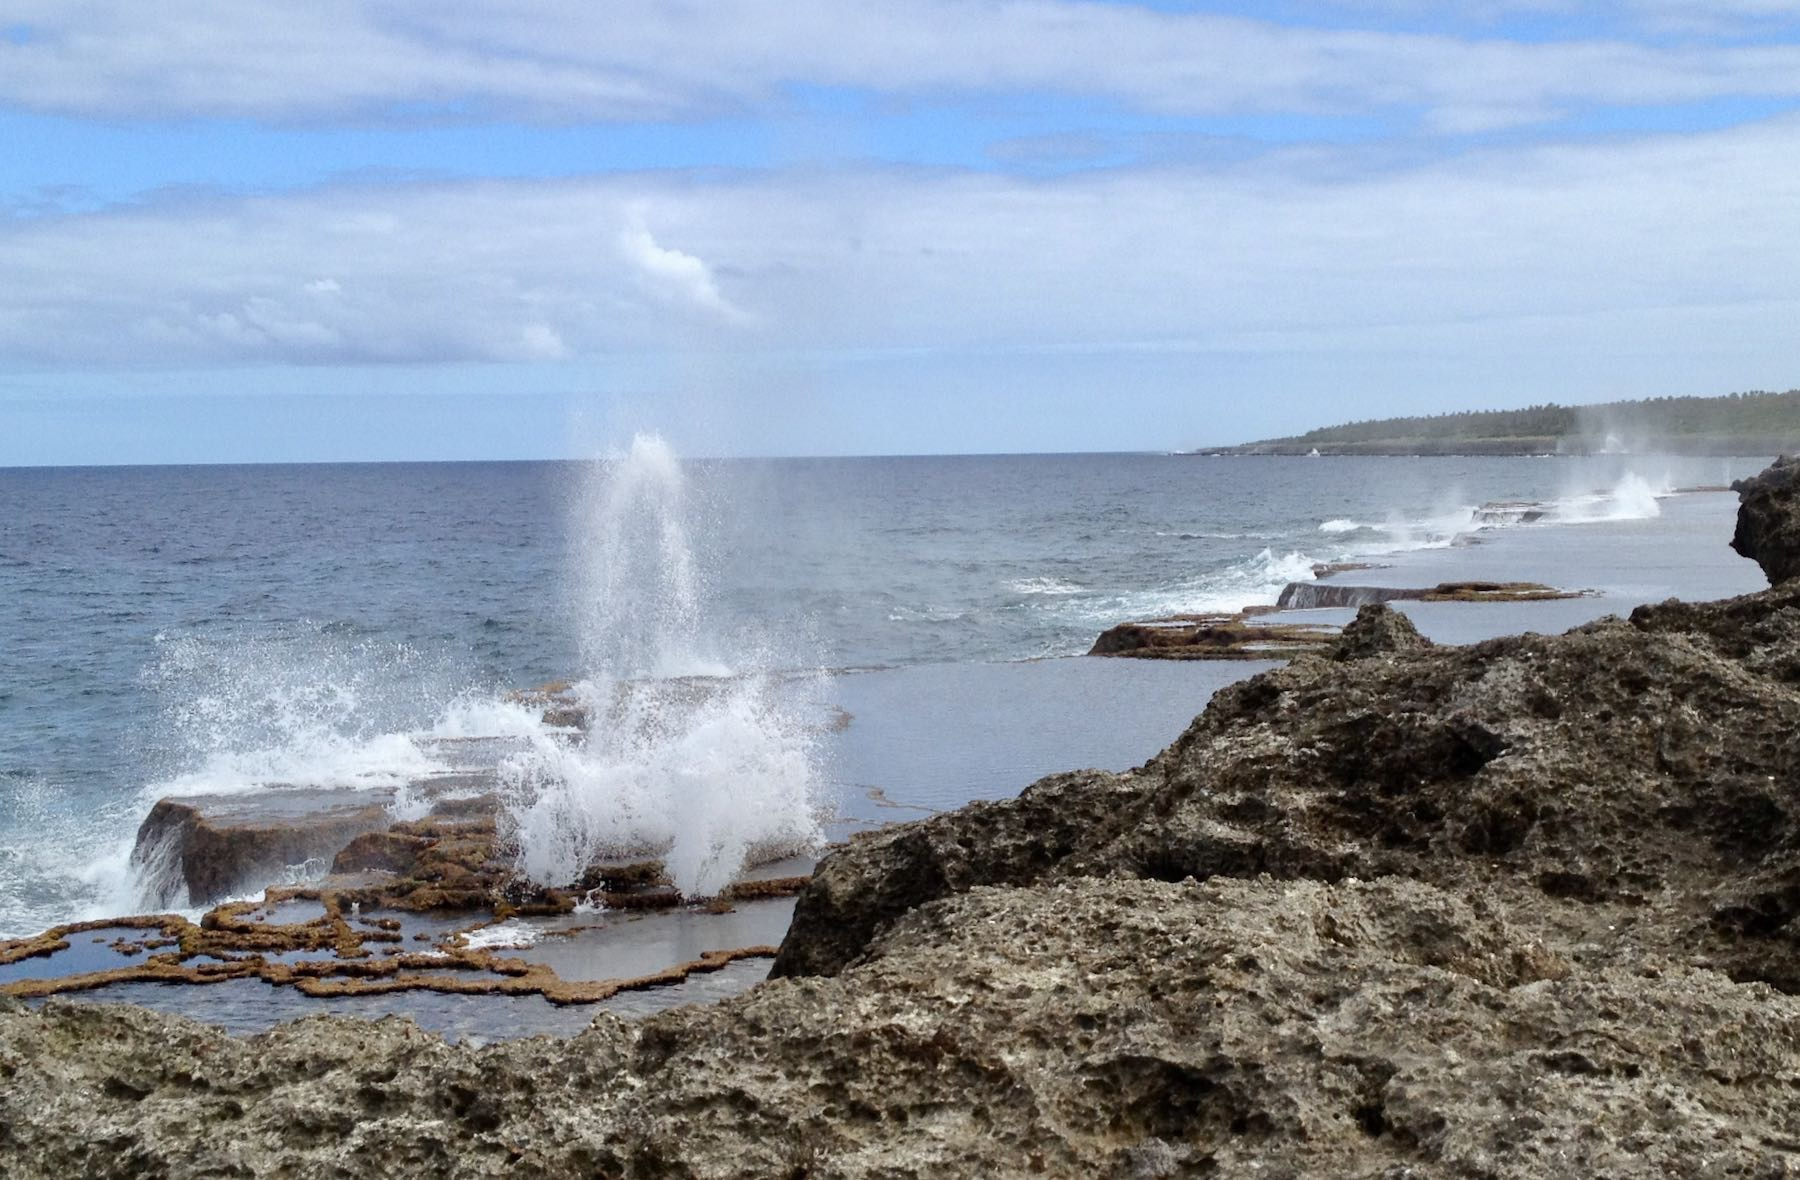 Water on the coast emerging from blowholes.